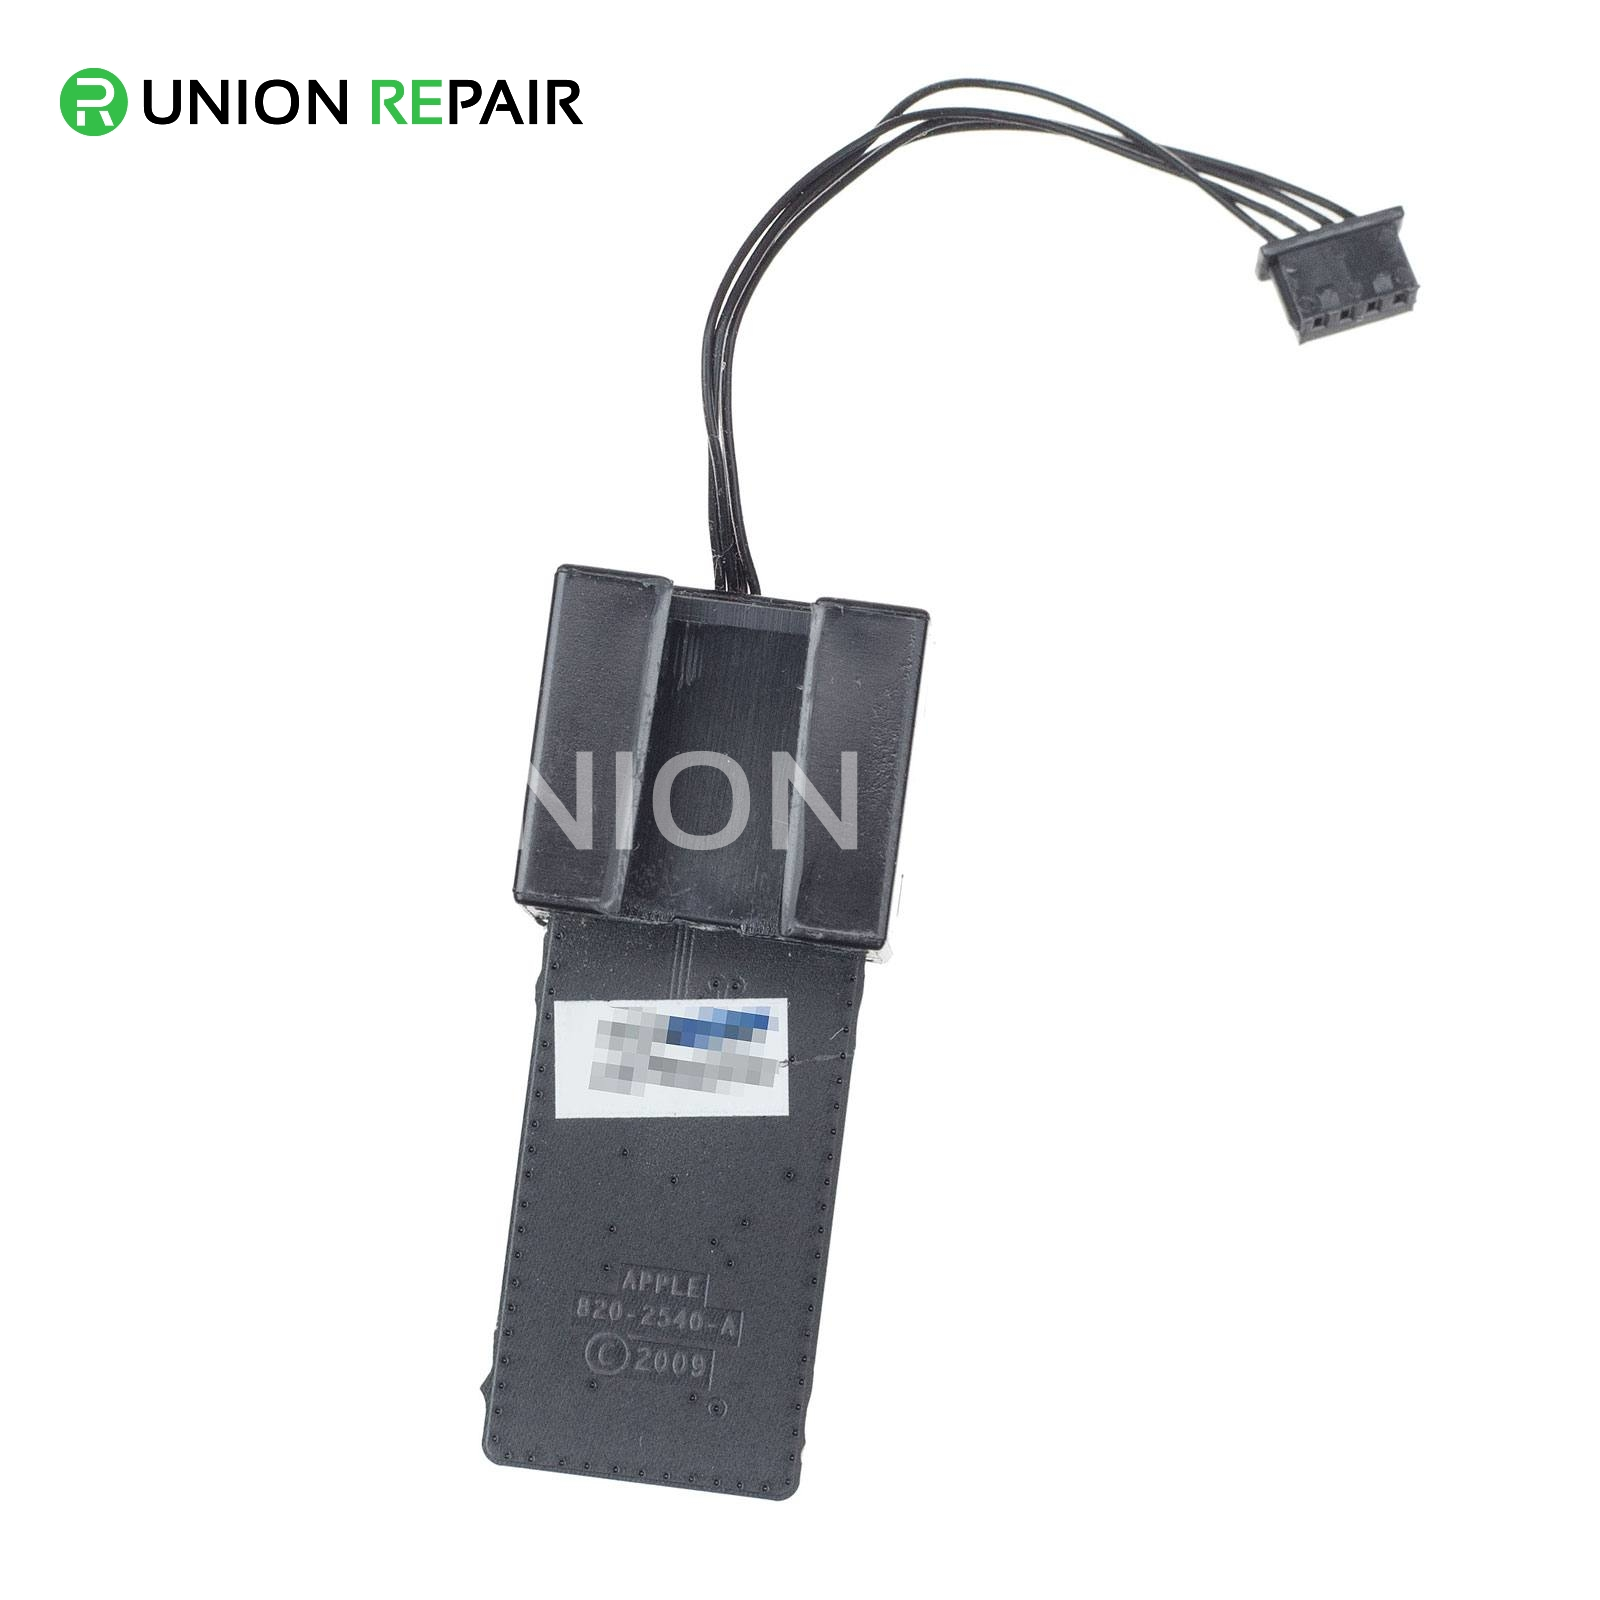 """IR Board & Cable for iMac 21.5"""" A1311 (Late 2009 - Late 2011)"""